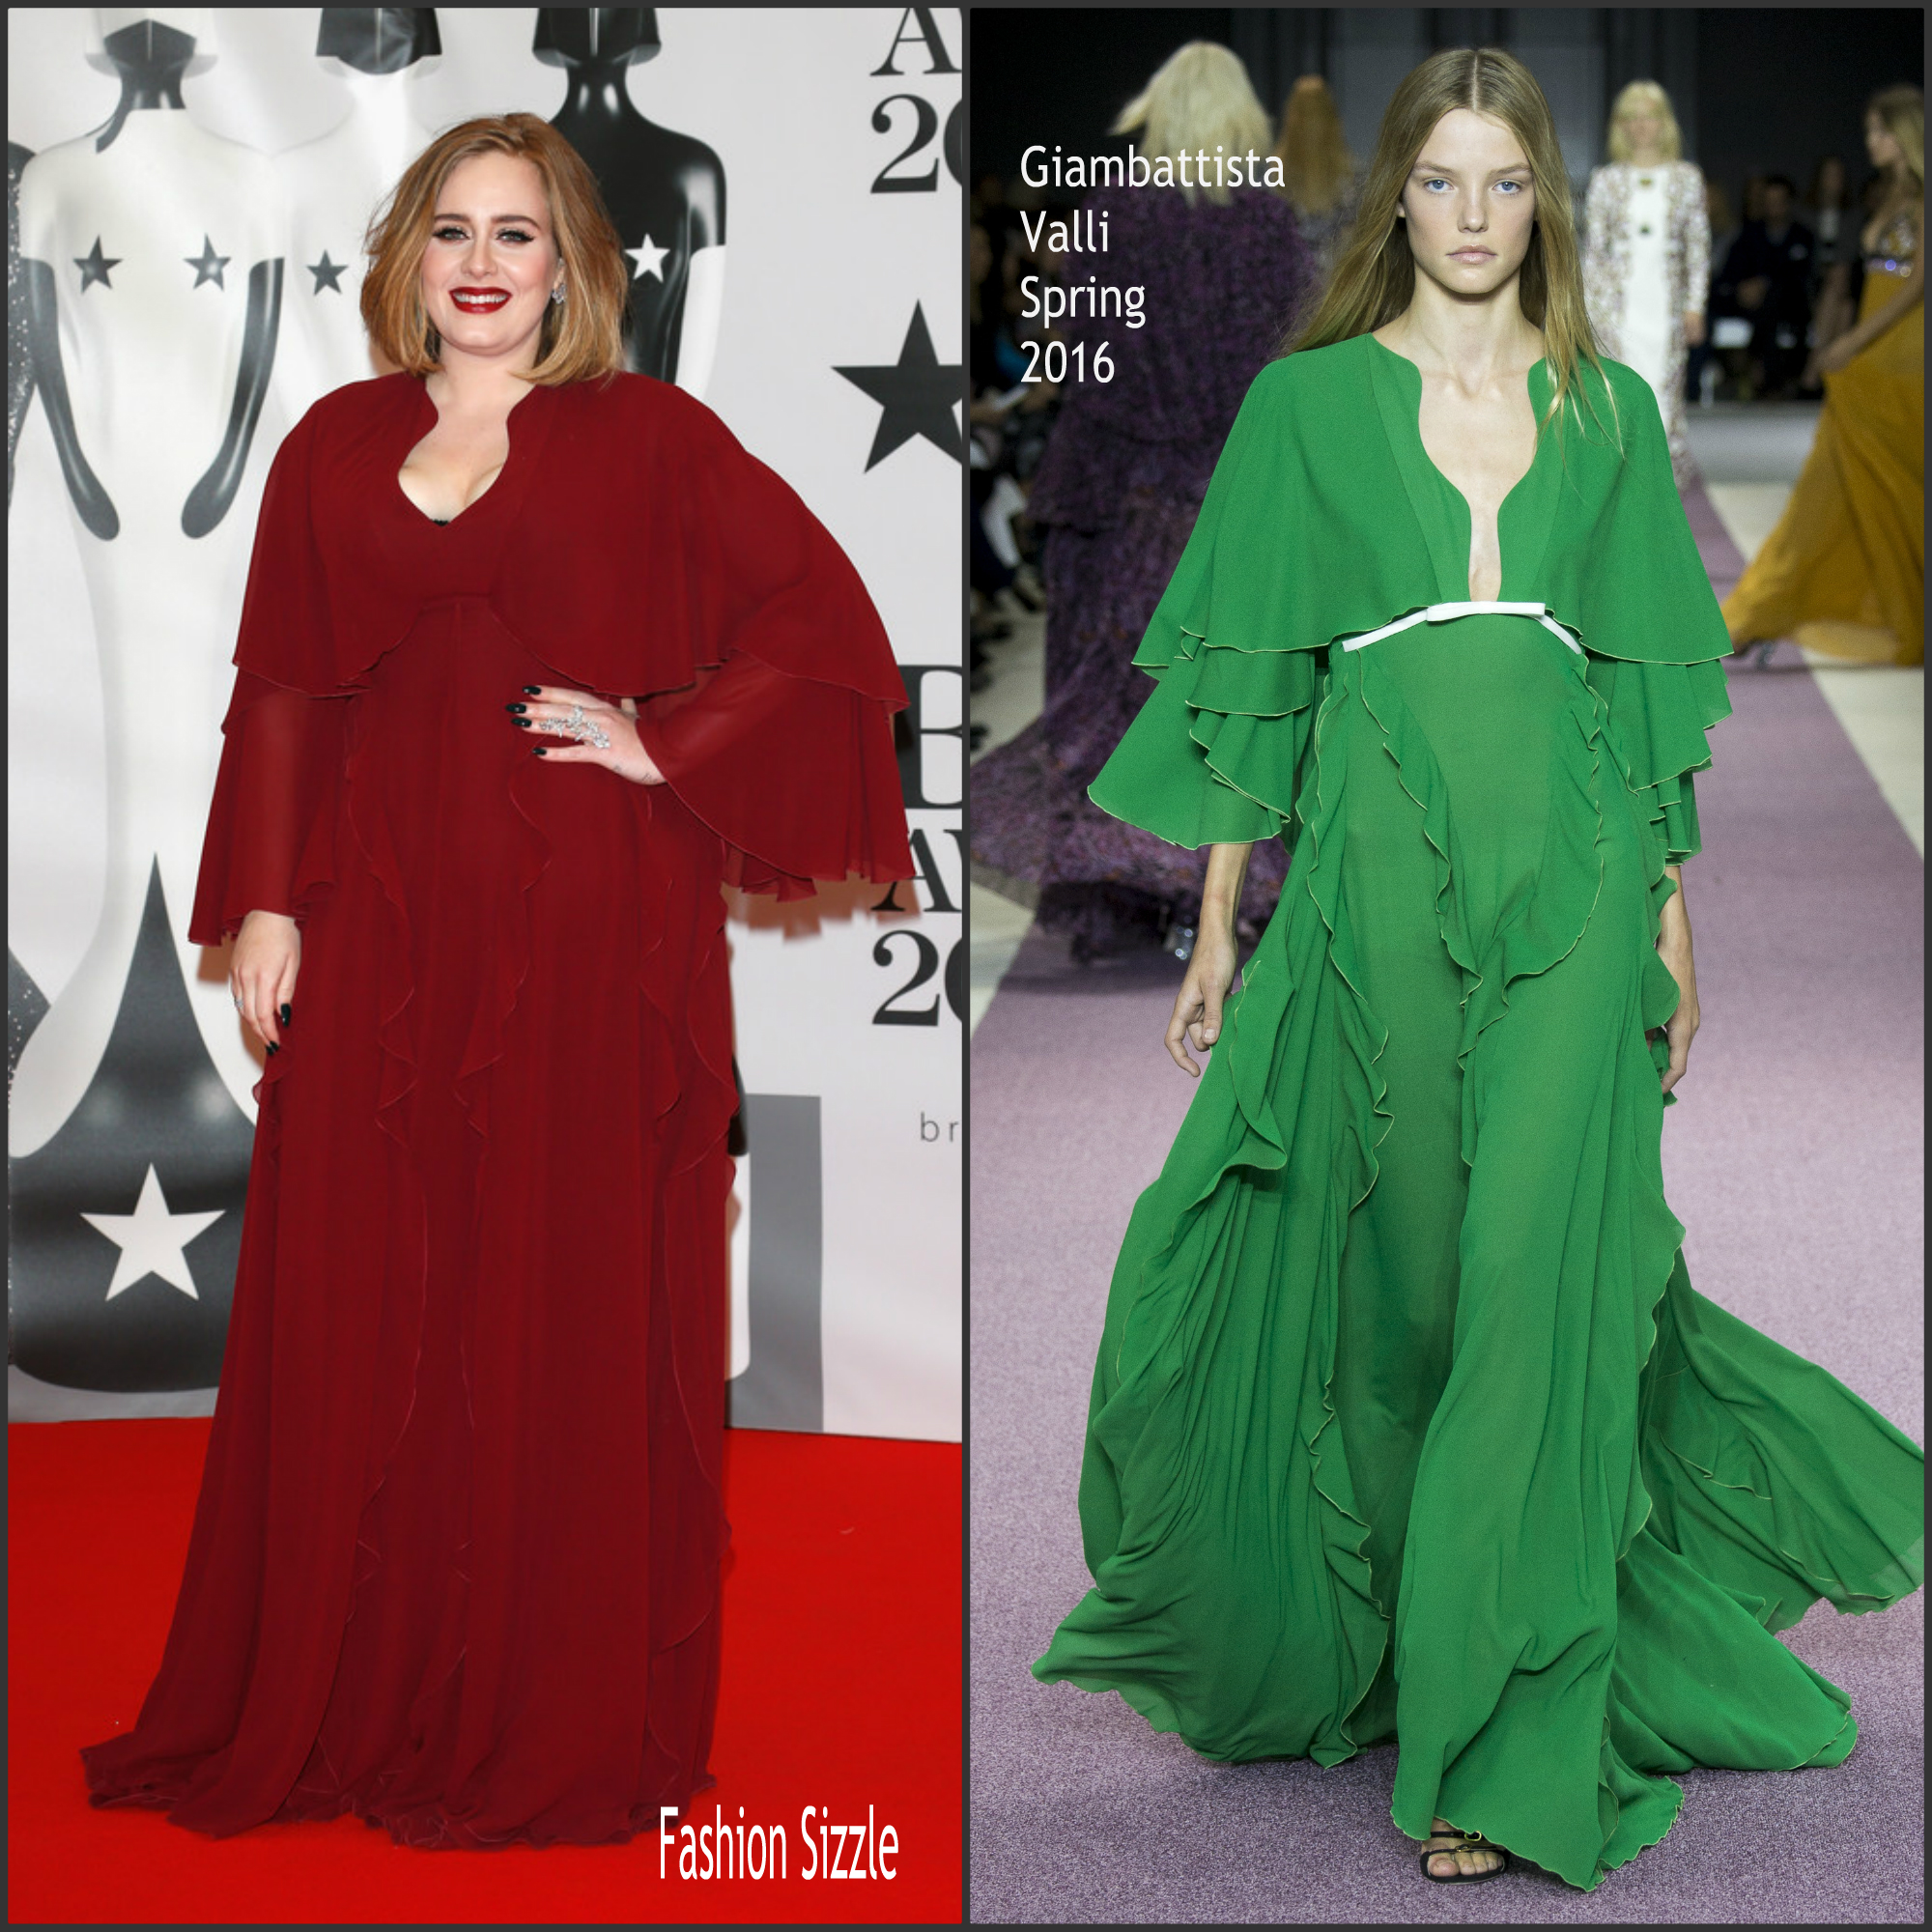 adele-in-giambattista-vall-2016-brit-awards